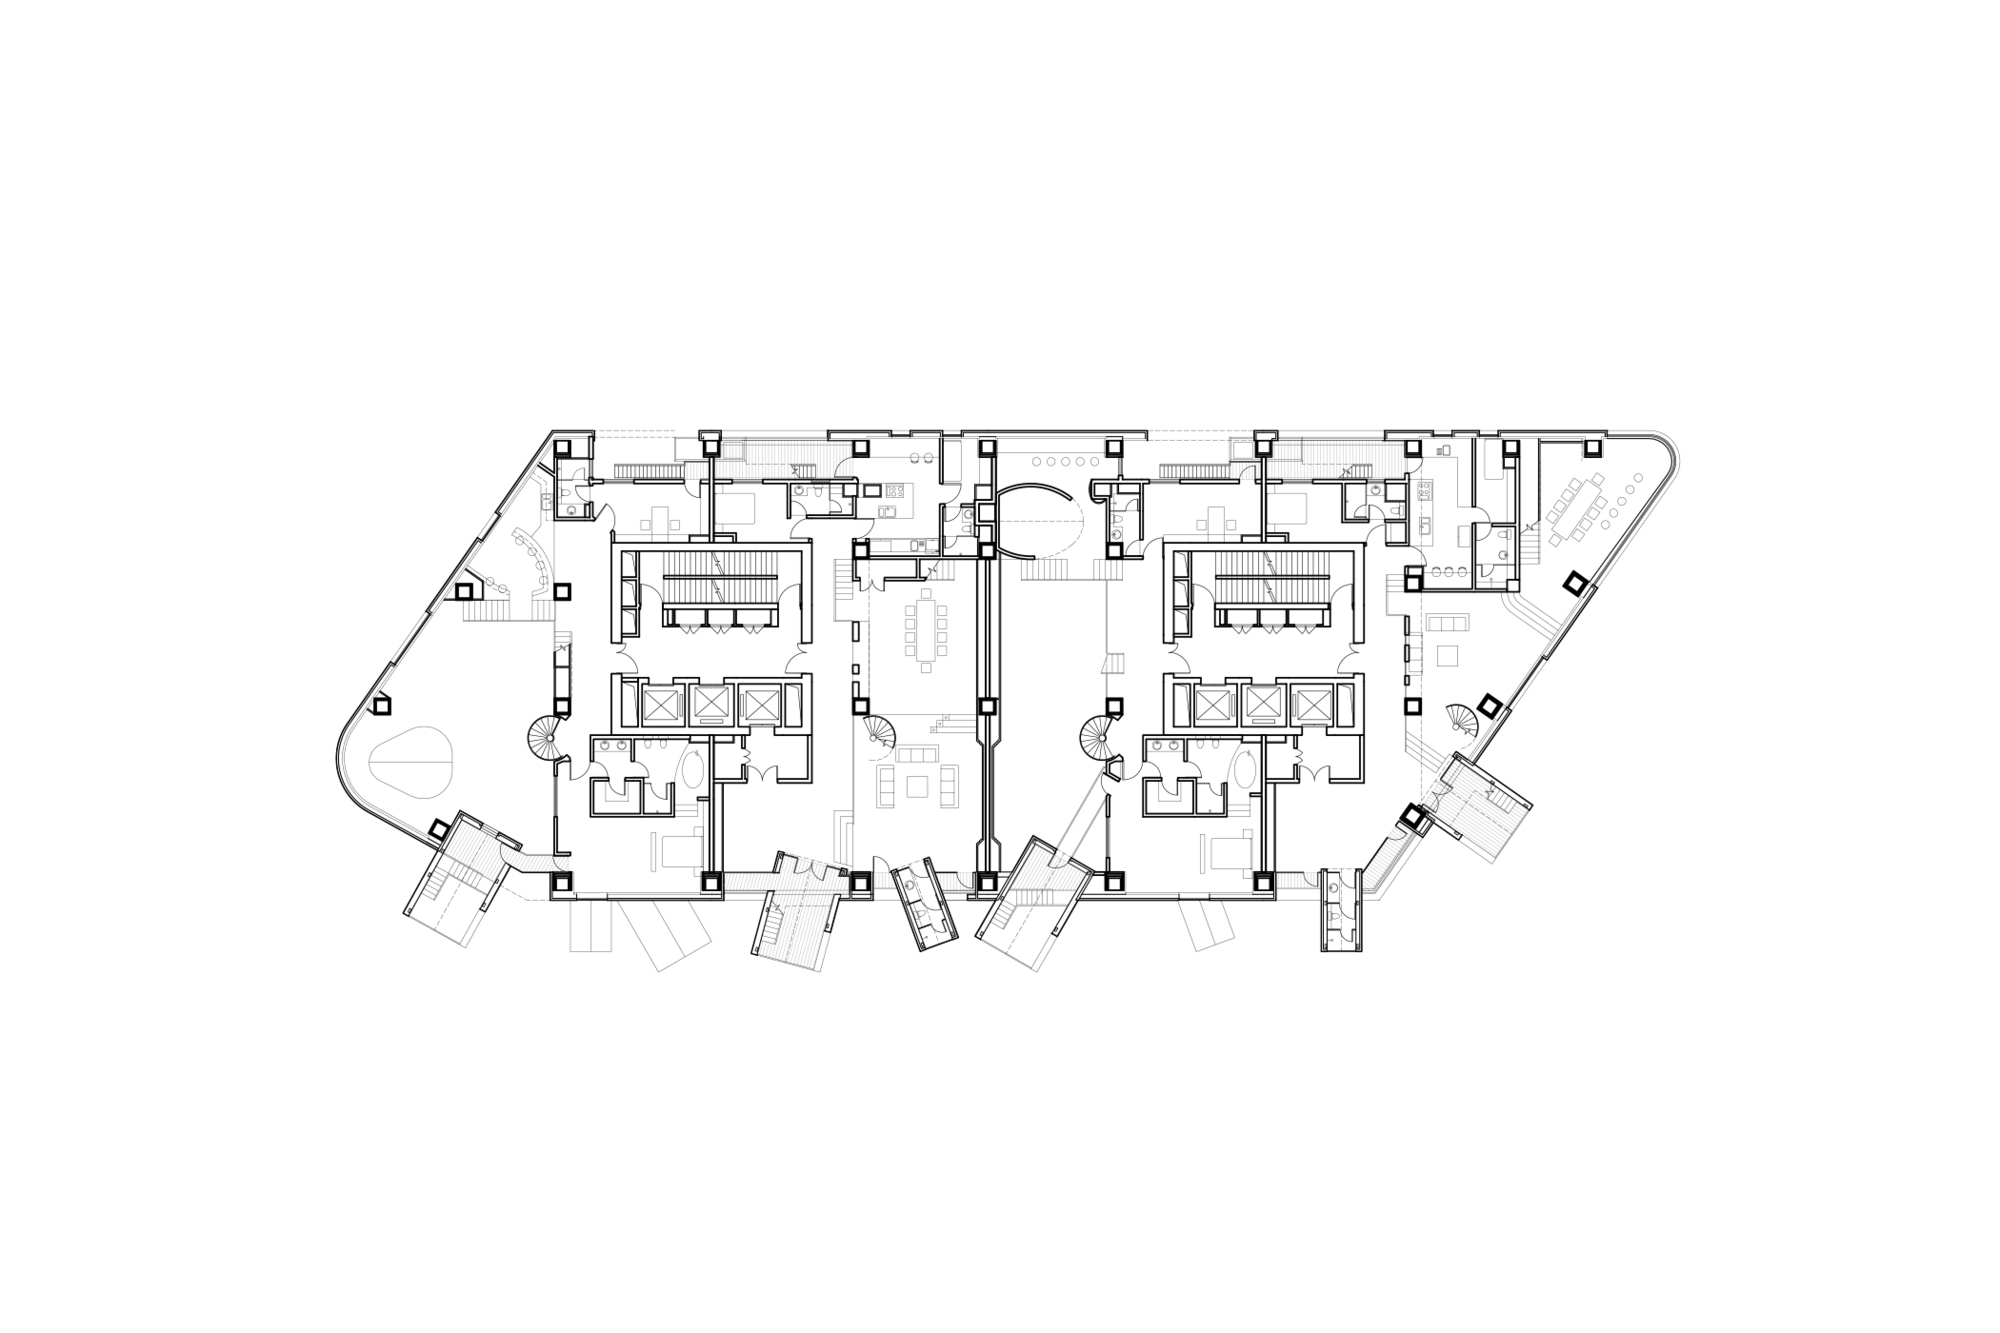 22_南楼七层平面图7th_floor_plan_of_south_tower.jpg